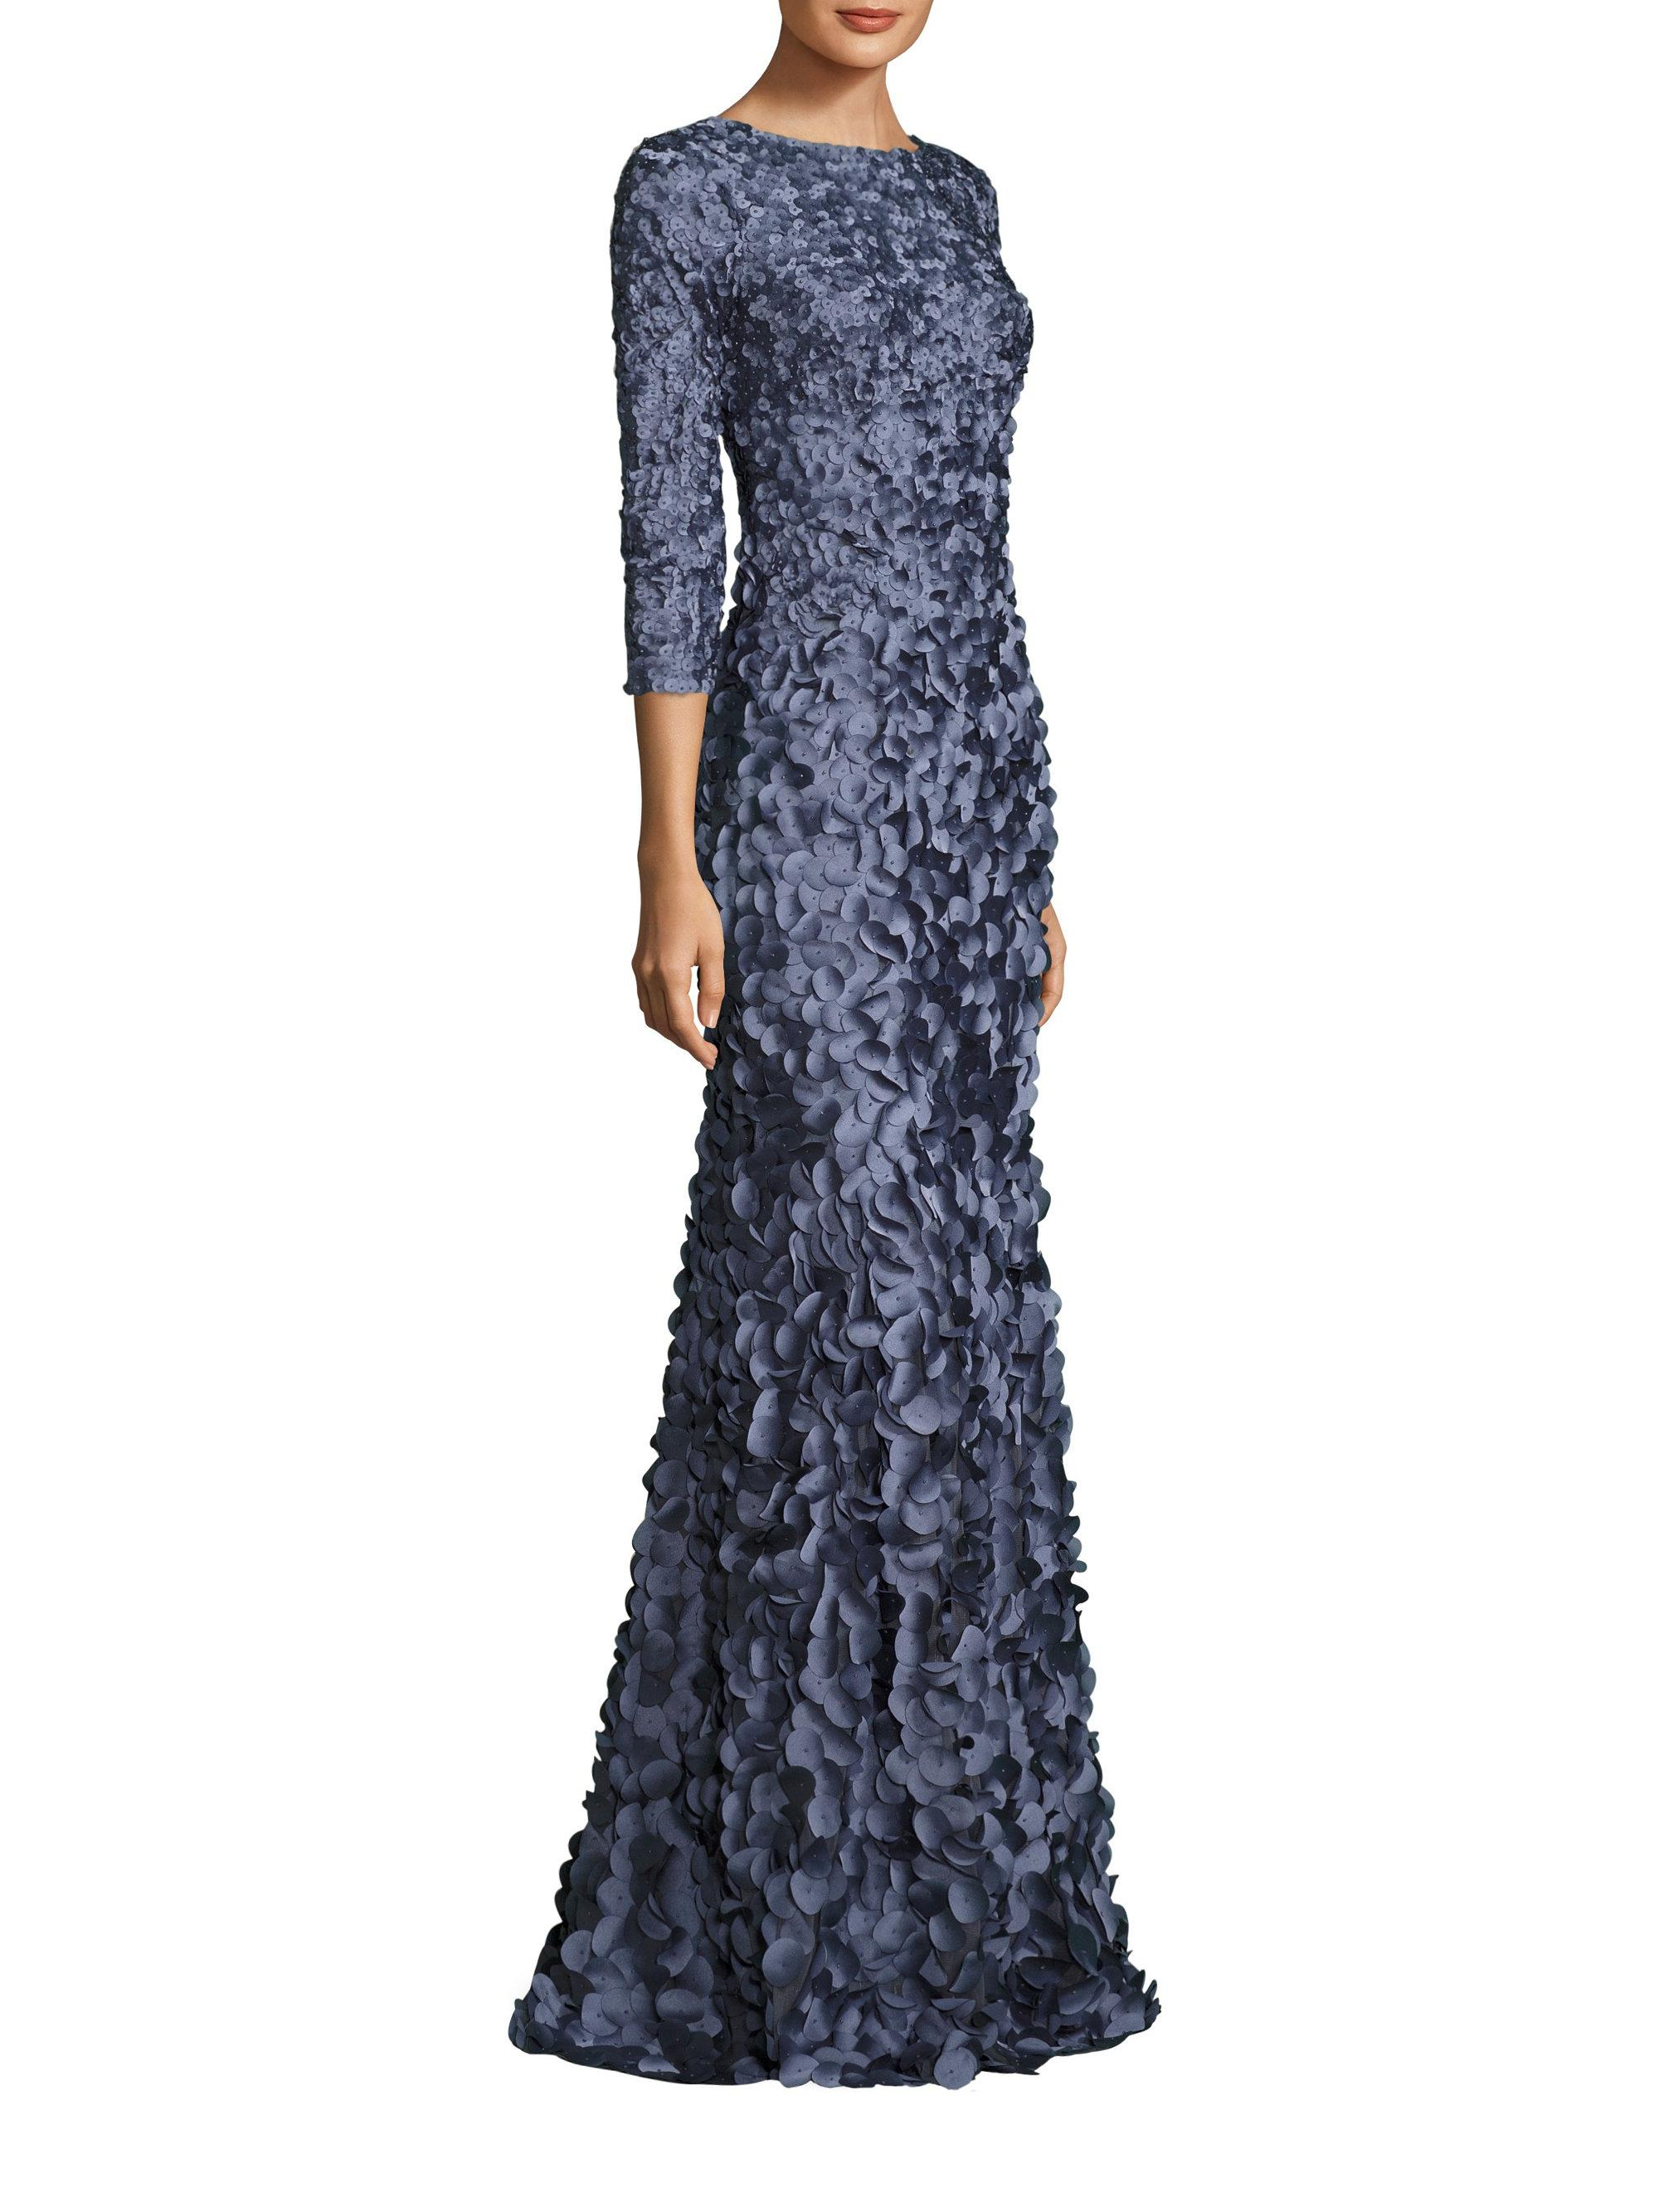 Lyst - Theia Petal Gown in Blue